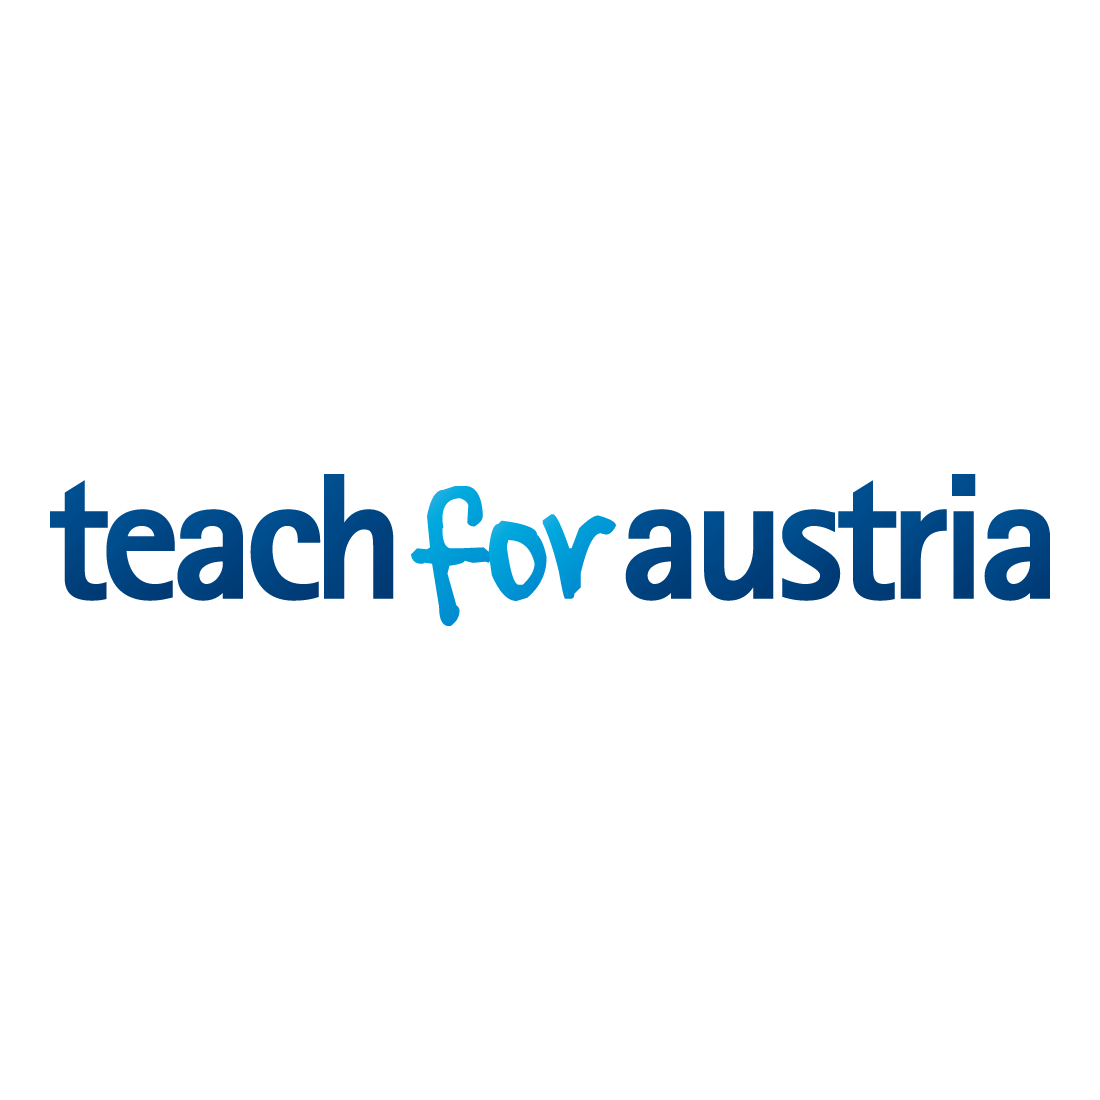 Teach-for-austria-logo